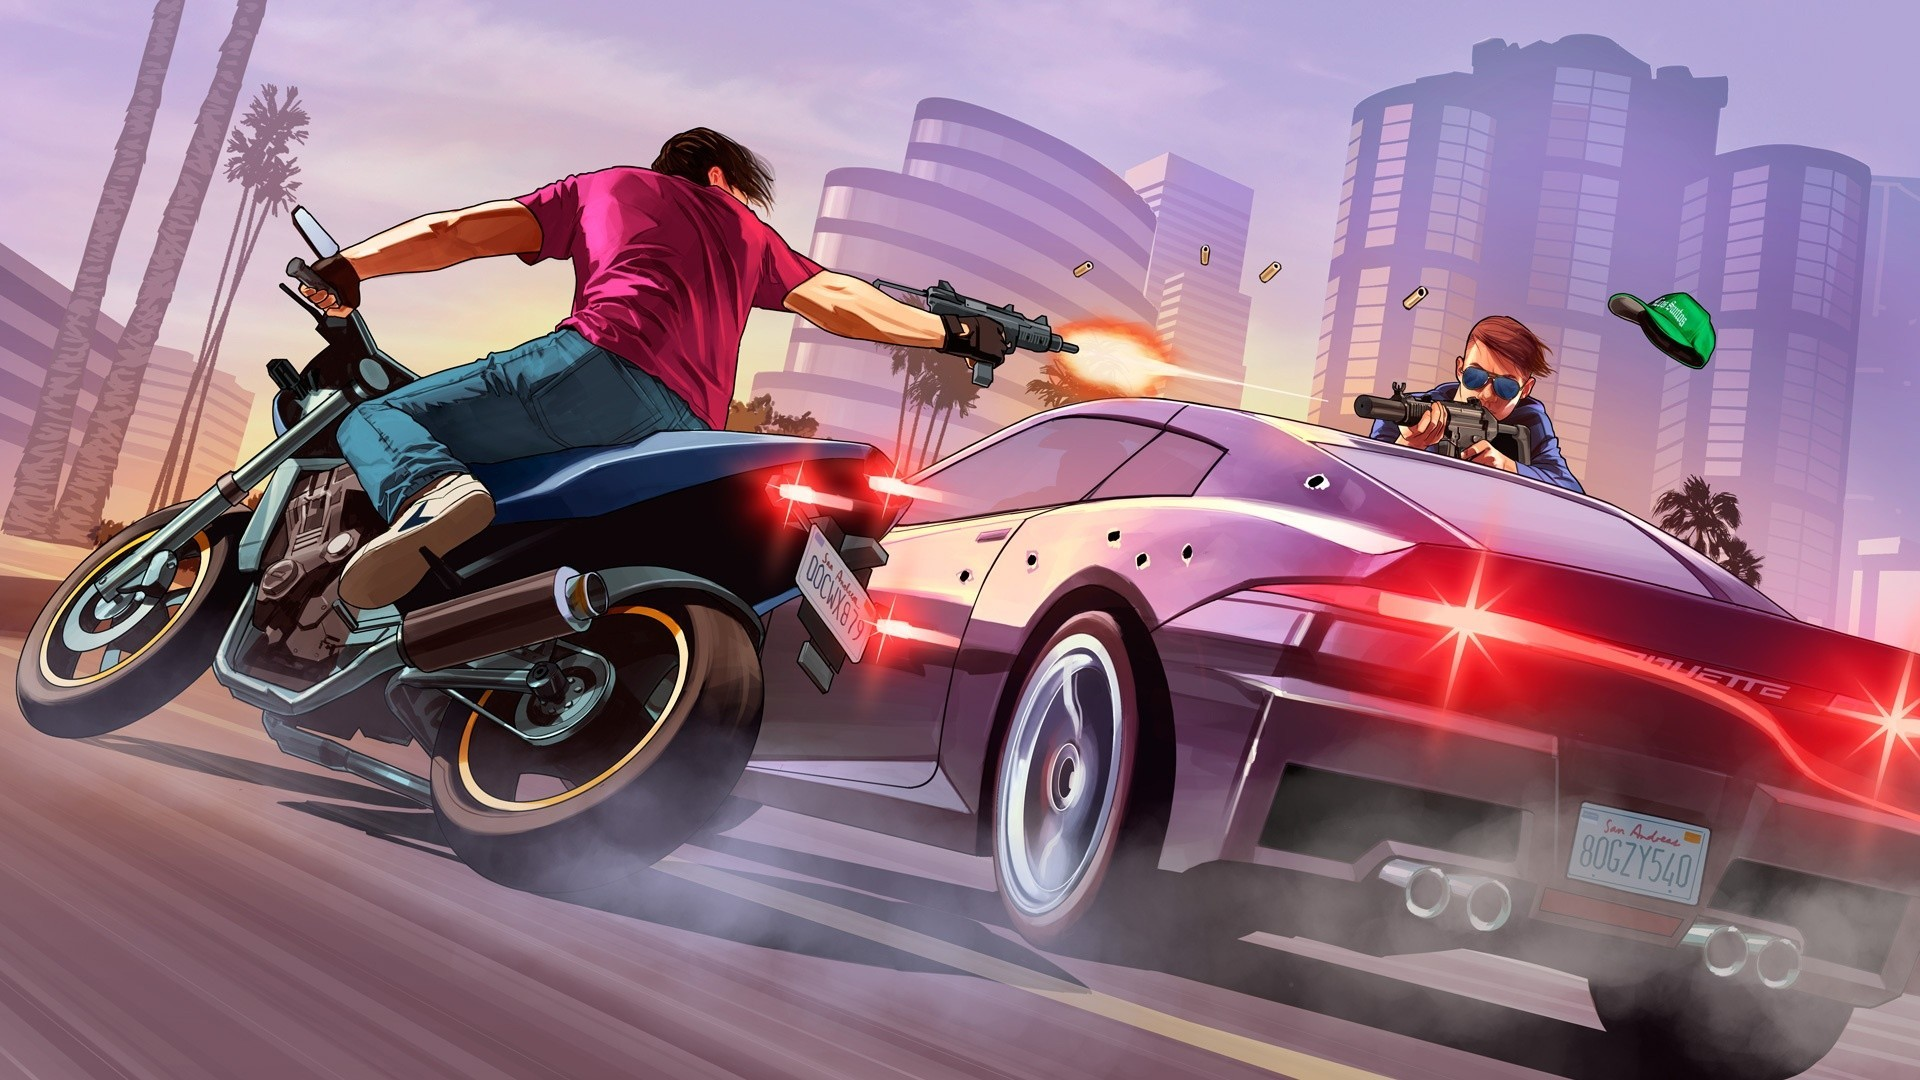 Grand Theft Auto Wallpaper 74 Pictures